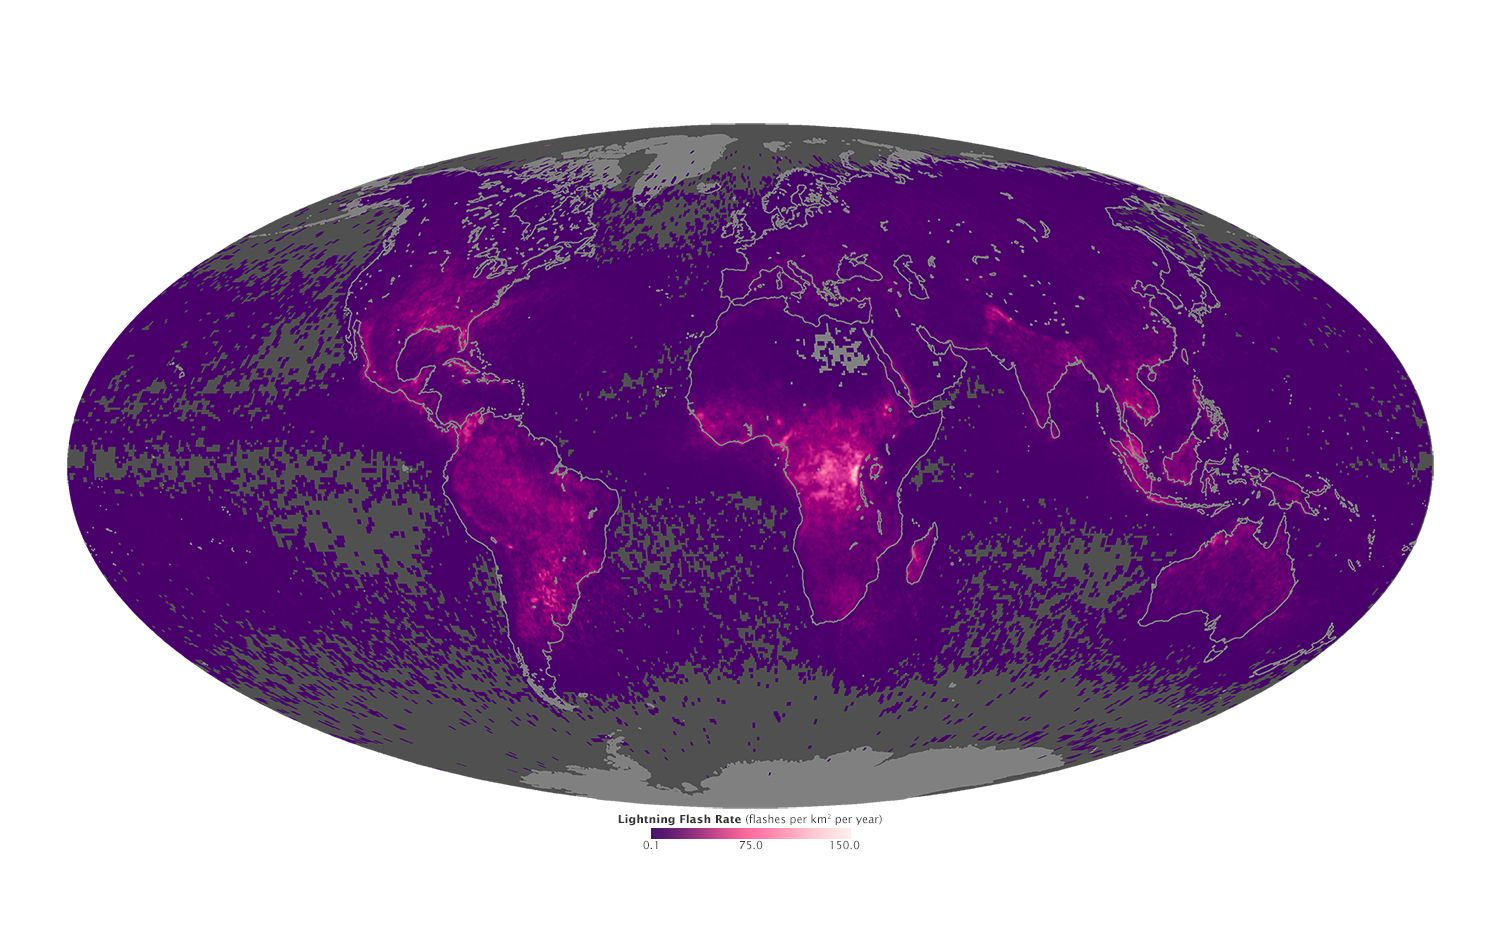 Nasa Map Shows Where Lightning Strikes Most Around The World